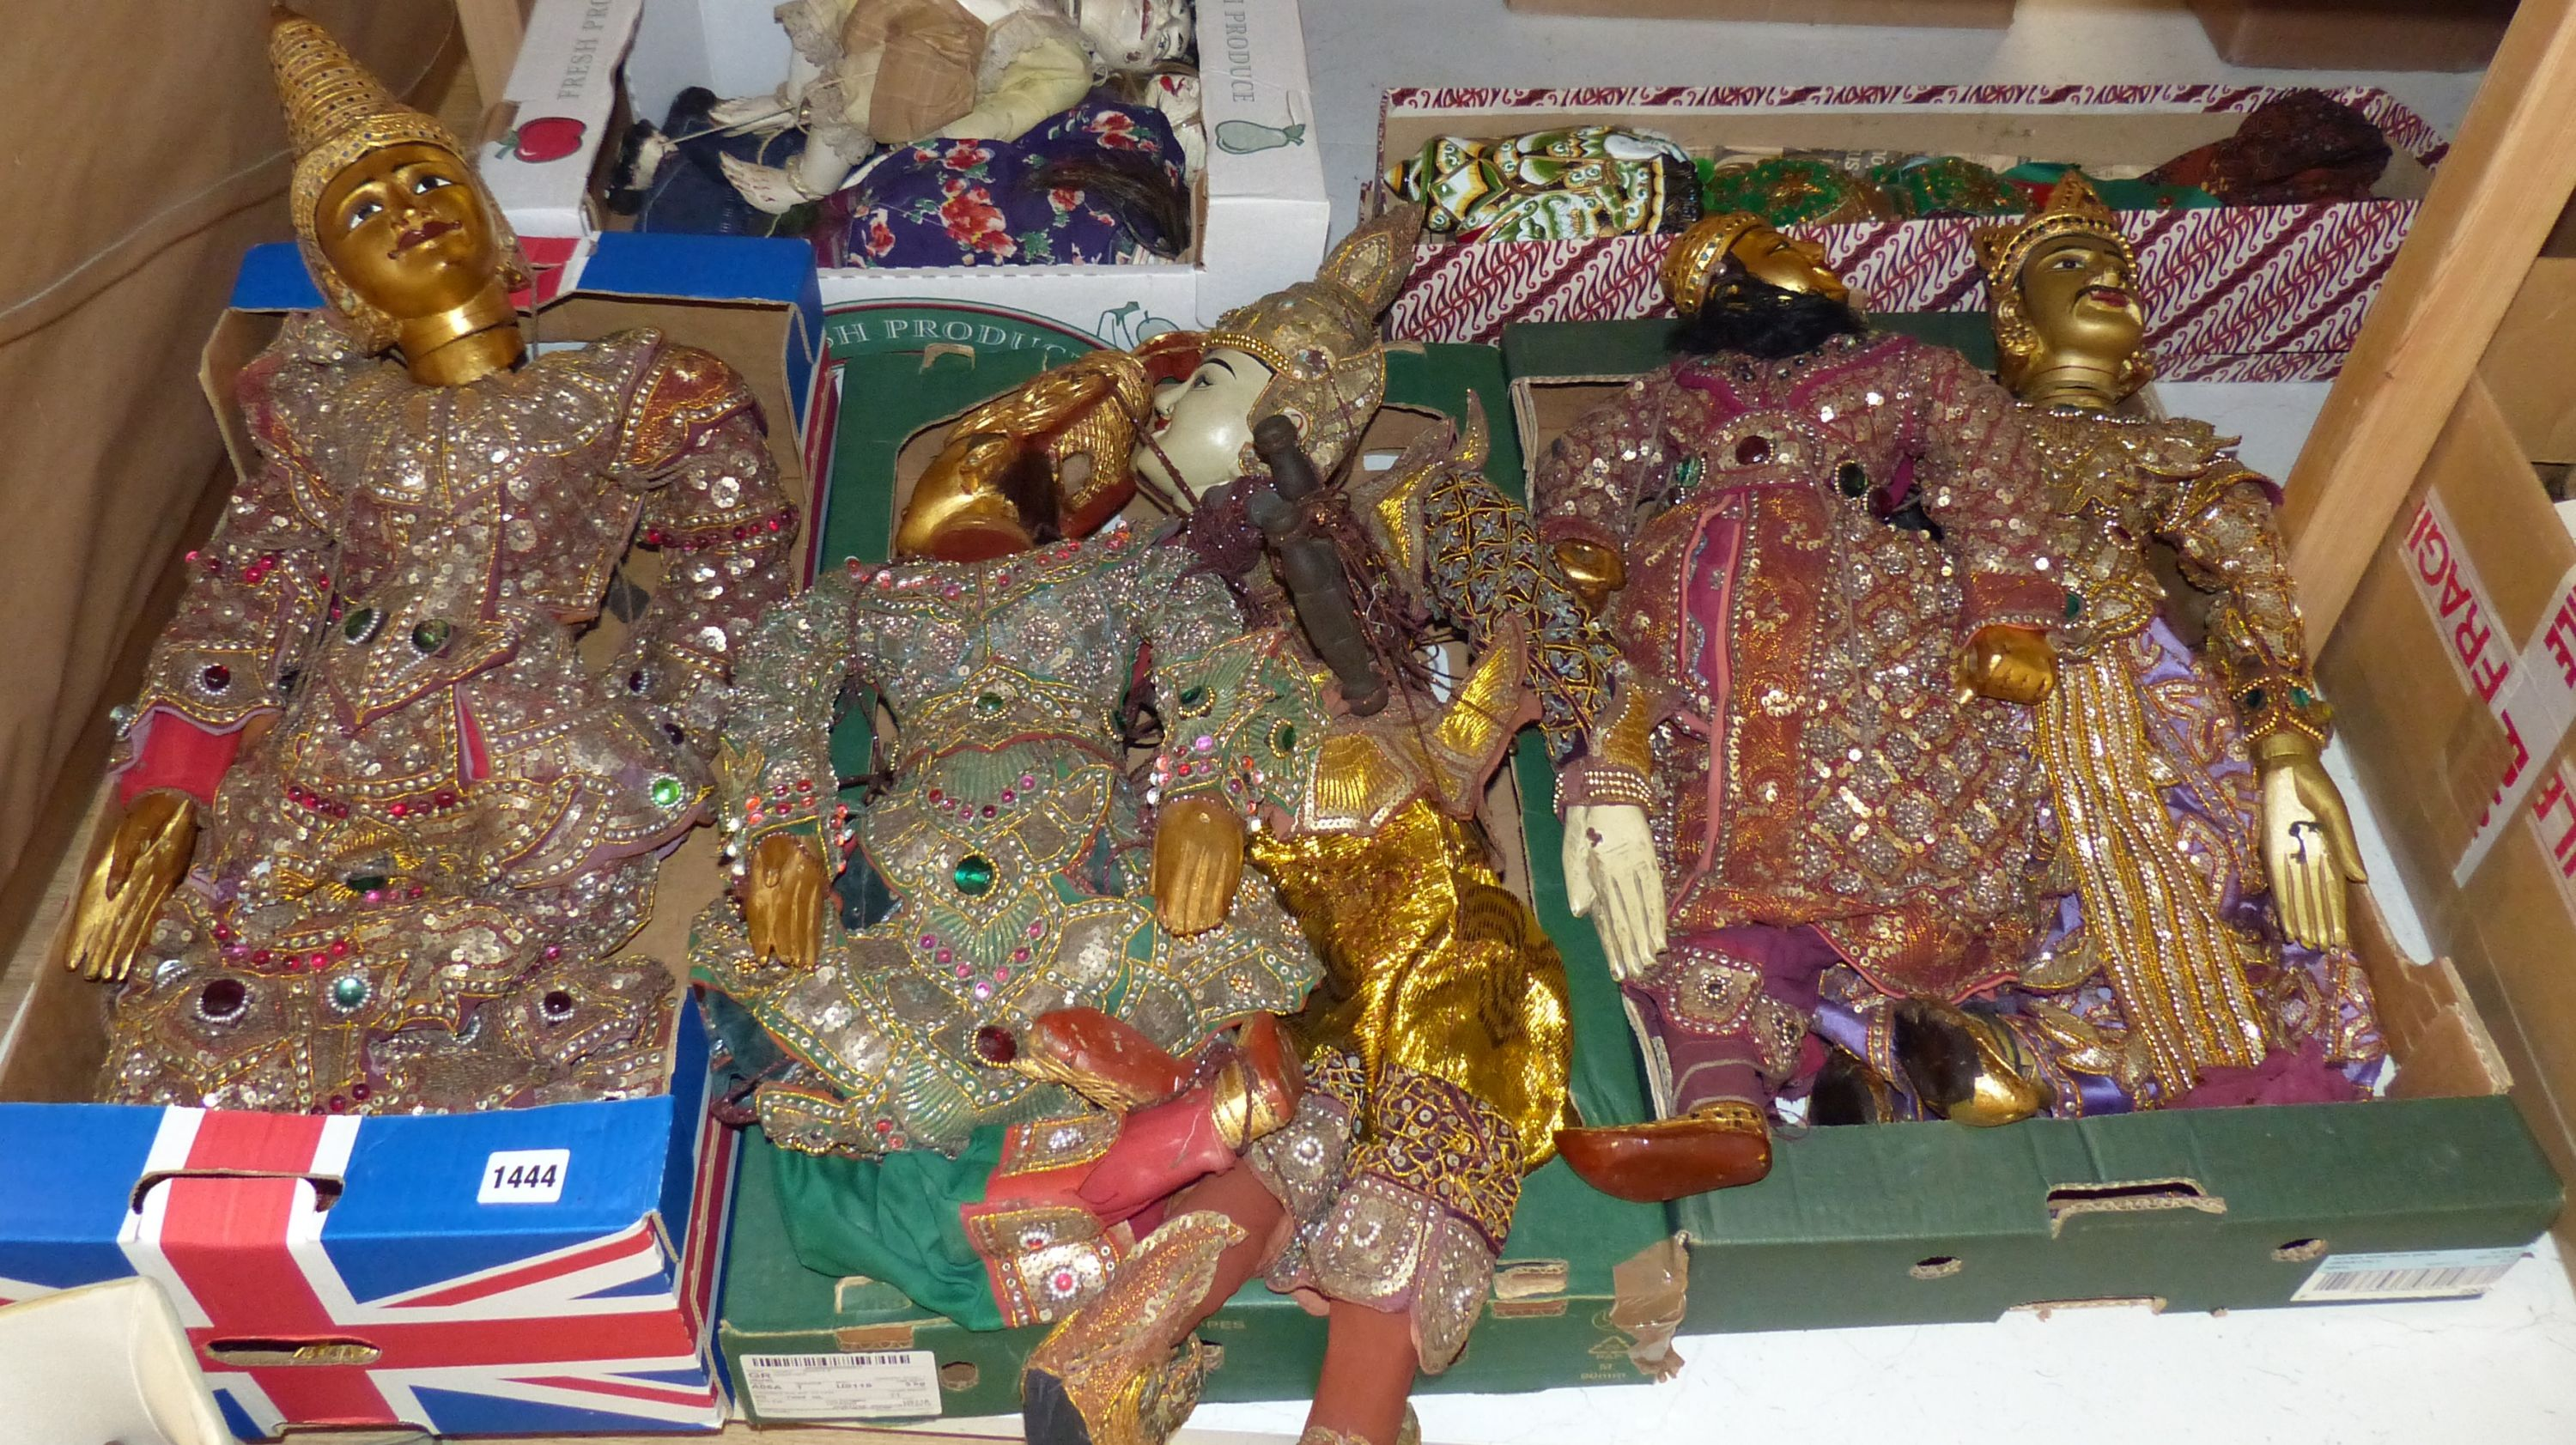 A quantity of Indonesian marionettes